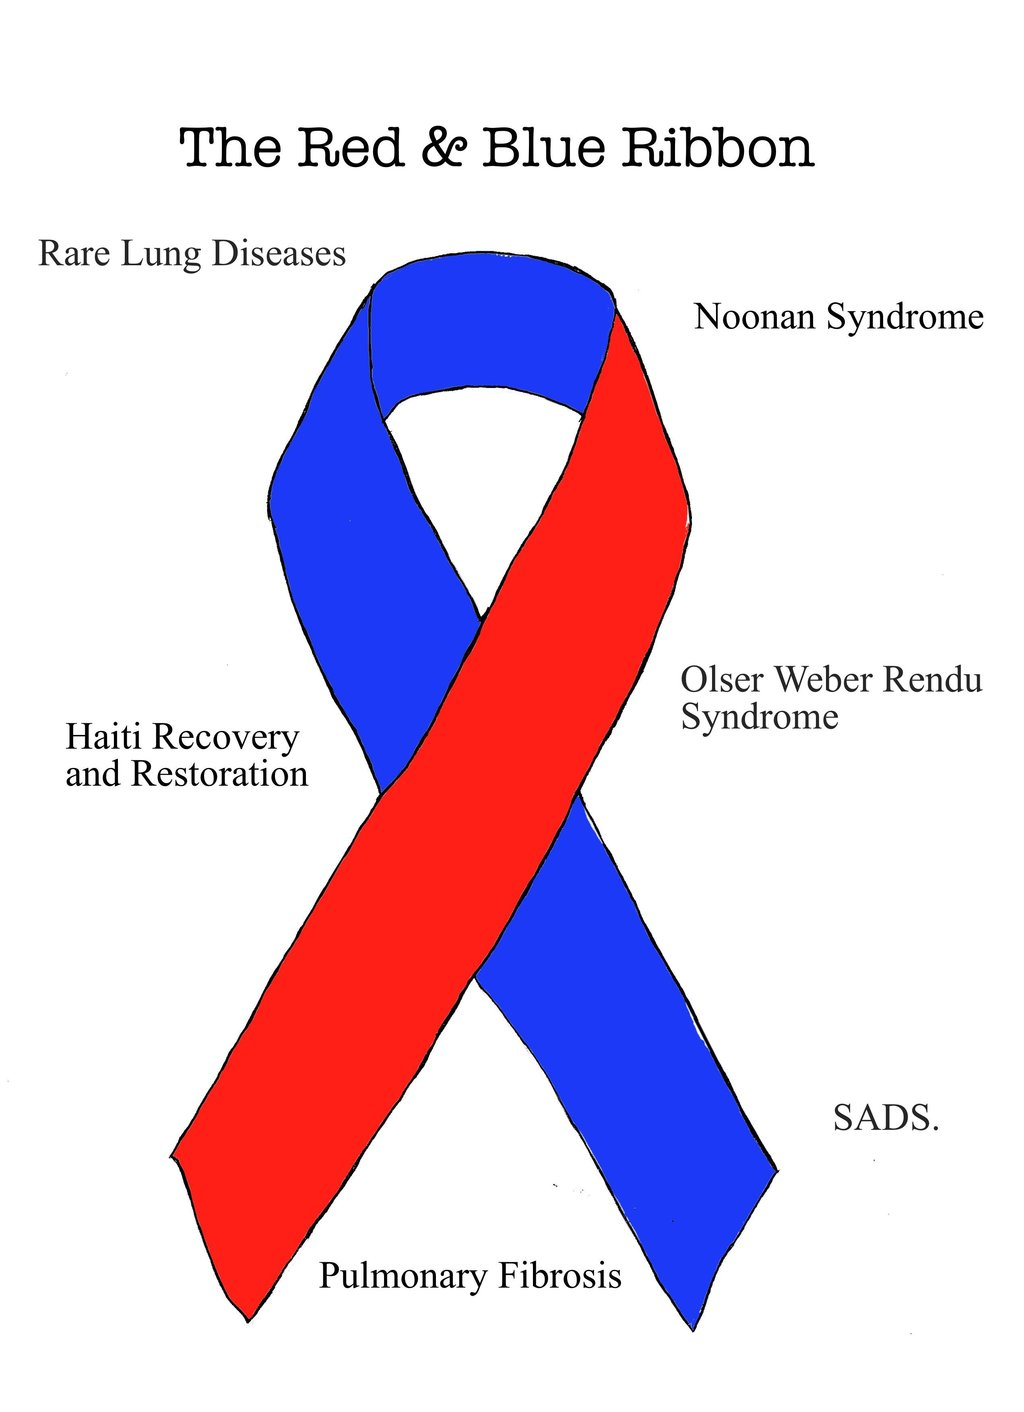 Red and blue ribbon Logos